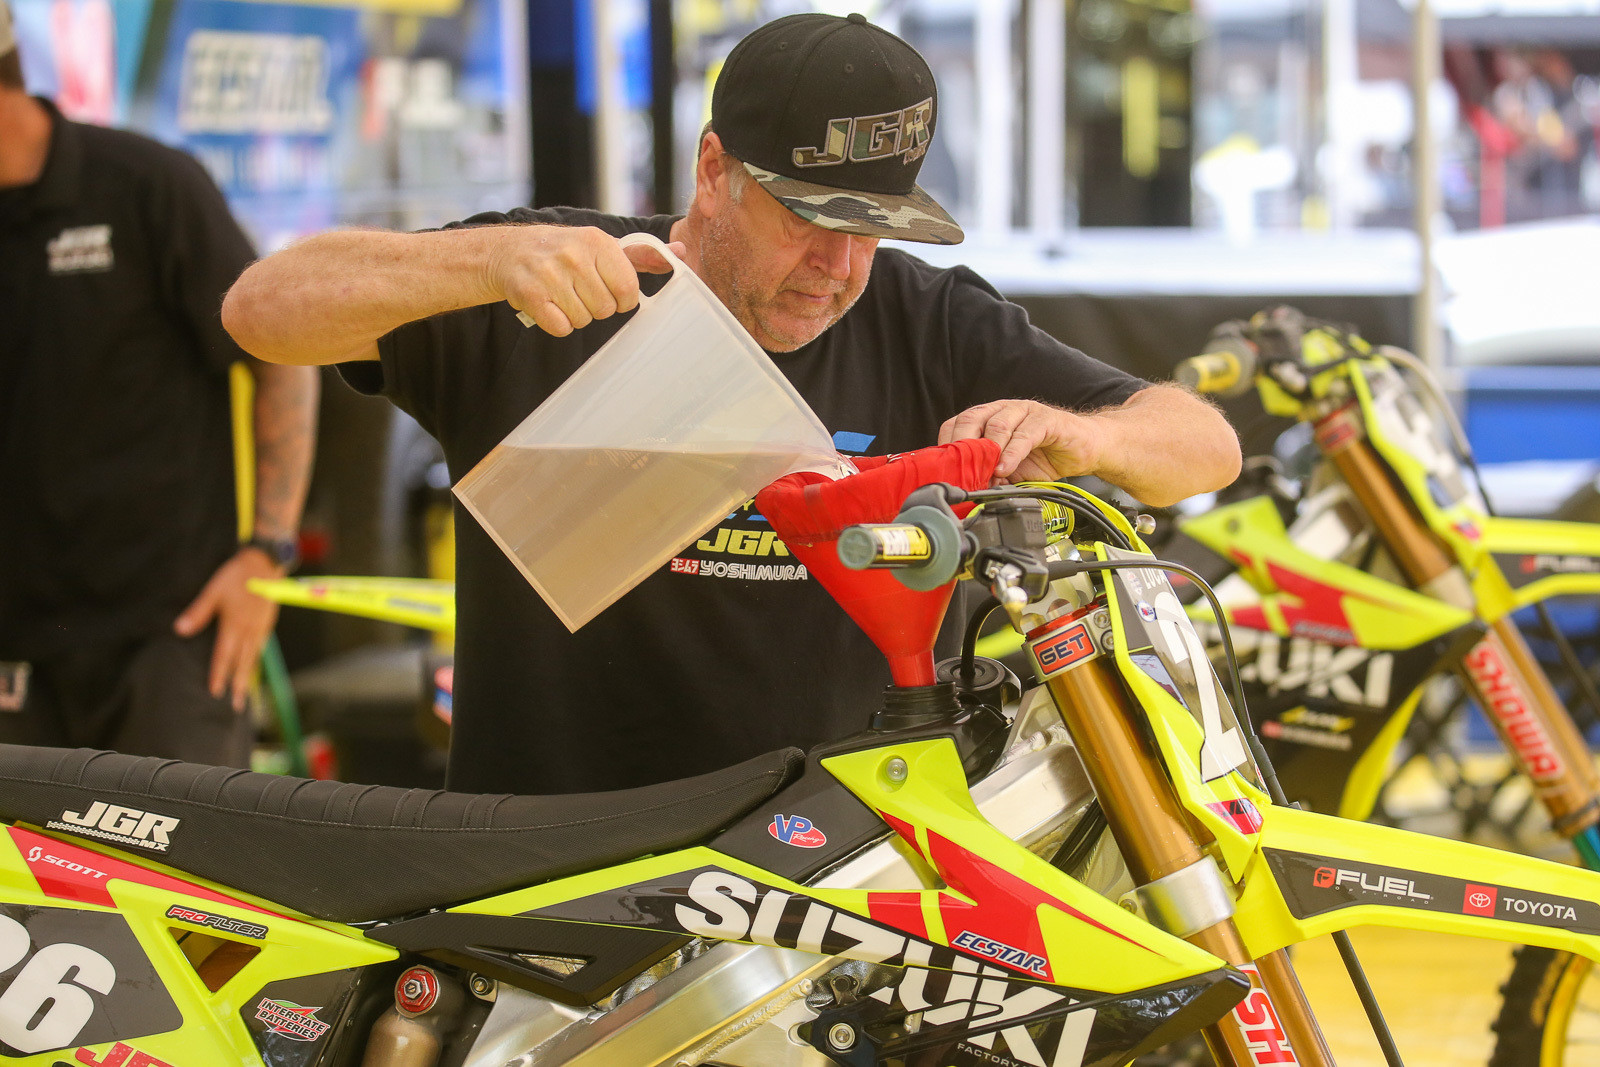 Lee Mccollum topping off Alex Martin's RM-Z250 with fuel. Only a limited number of 250s went for it on Larocco's Leap. This was one of them.